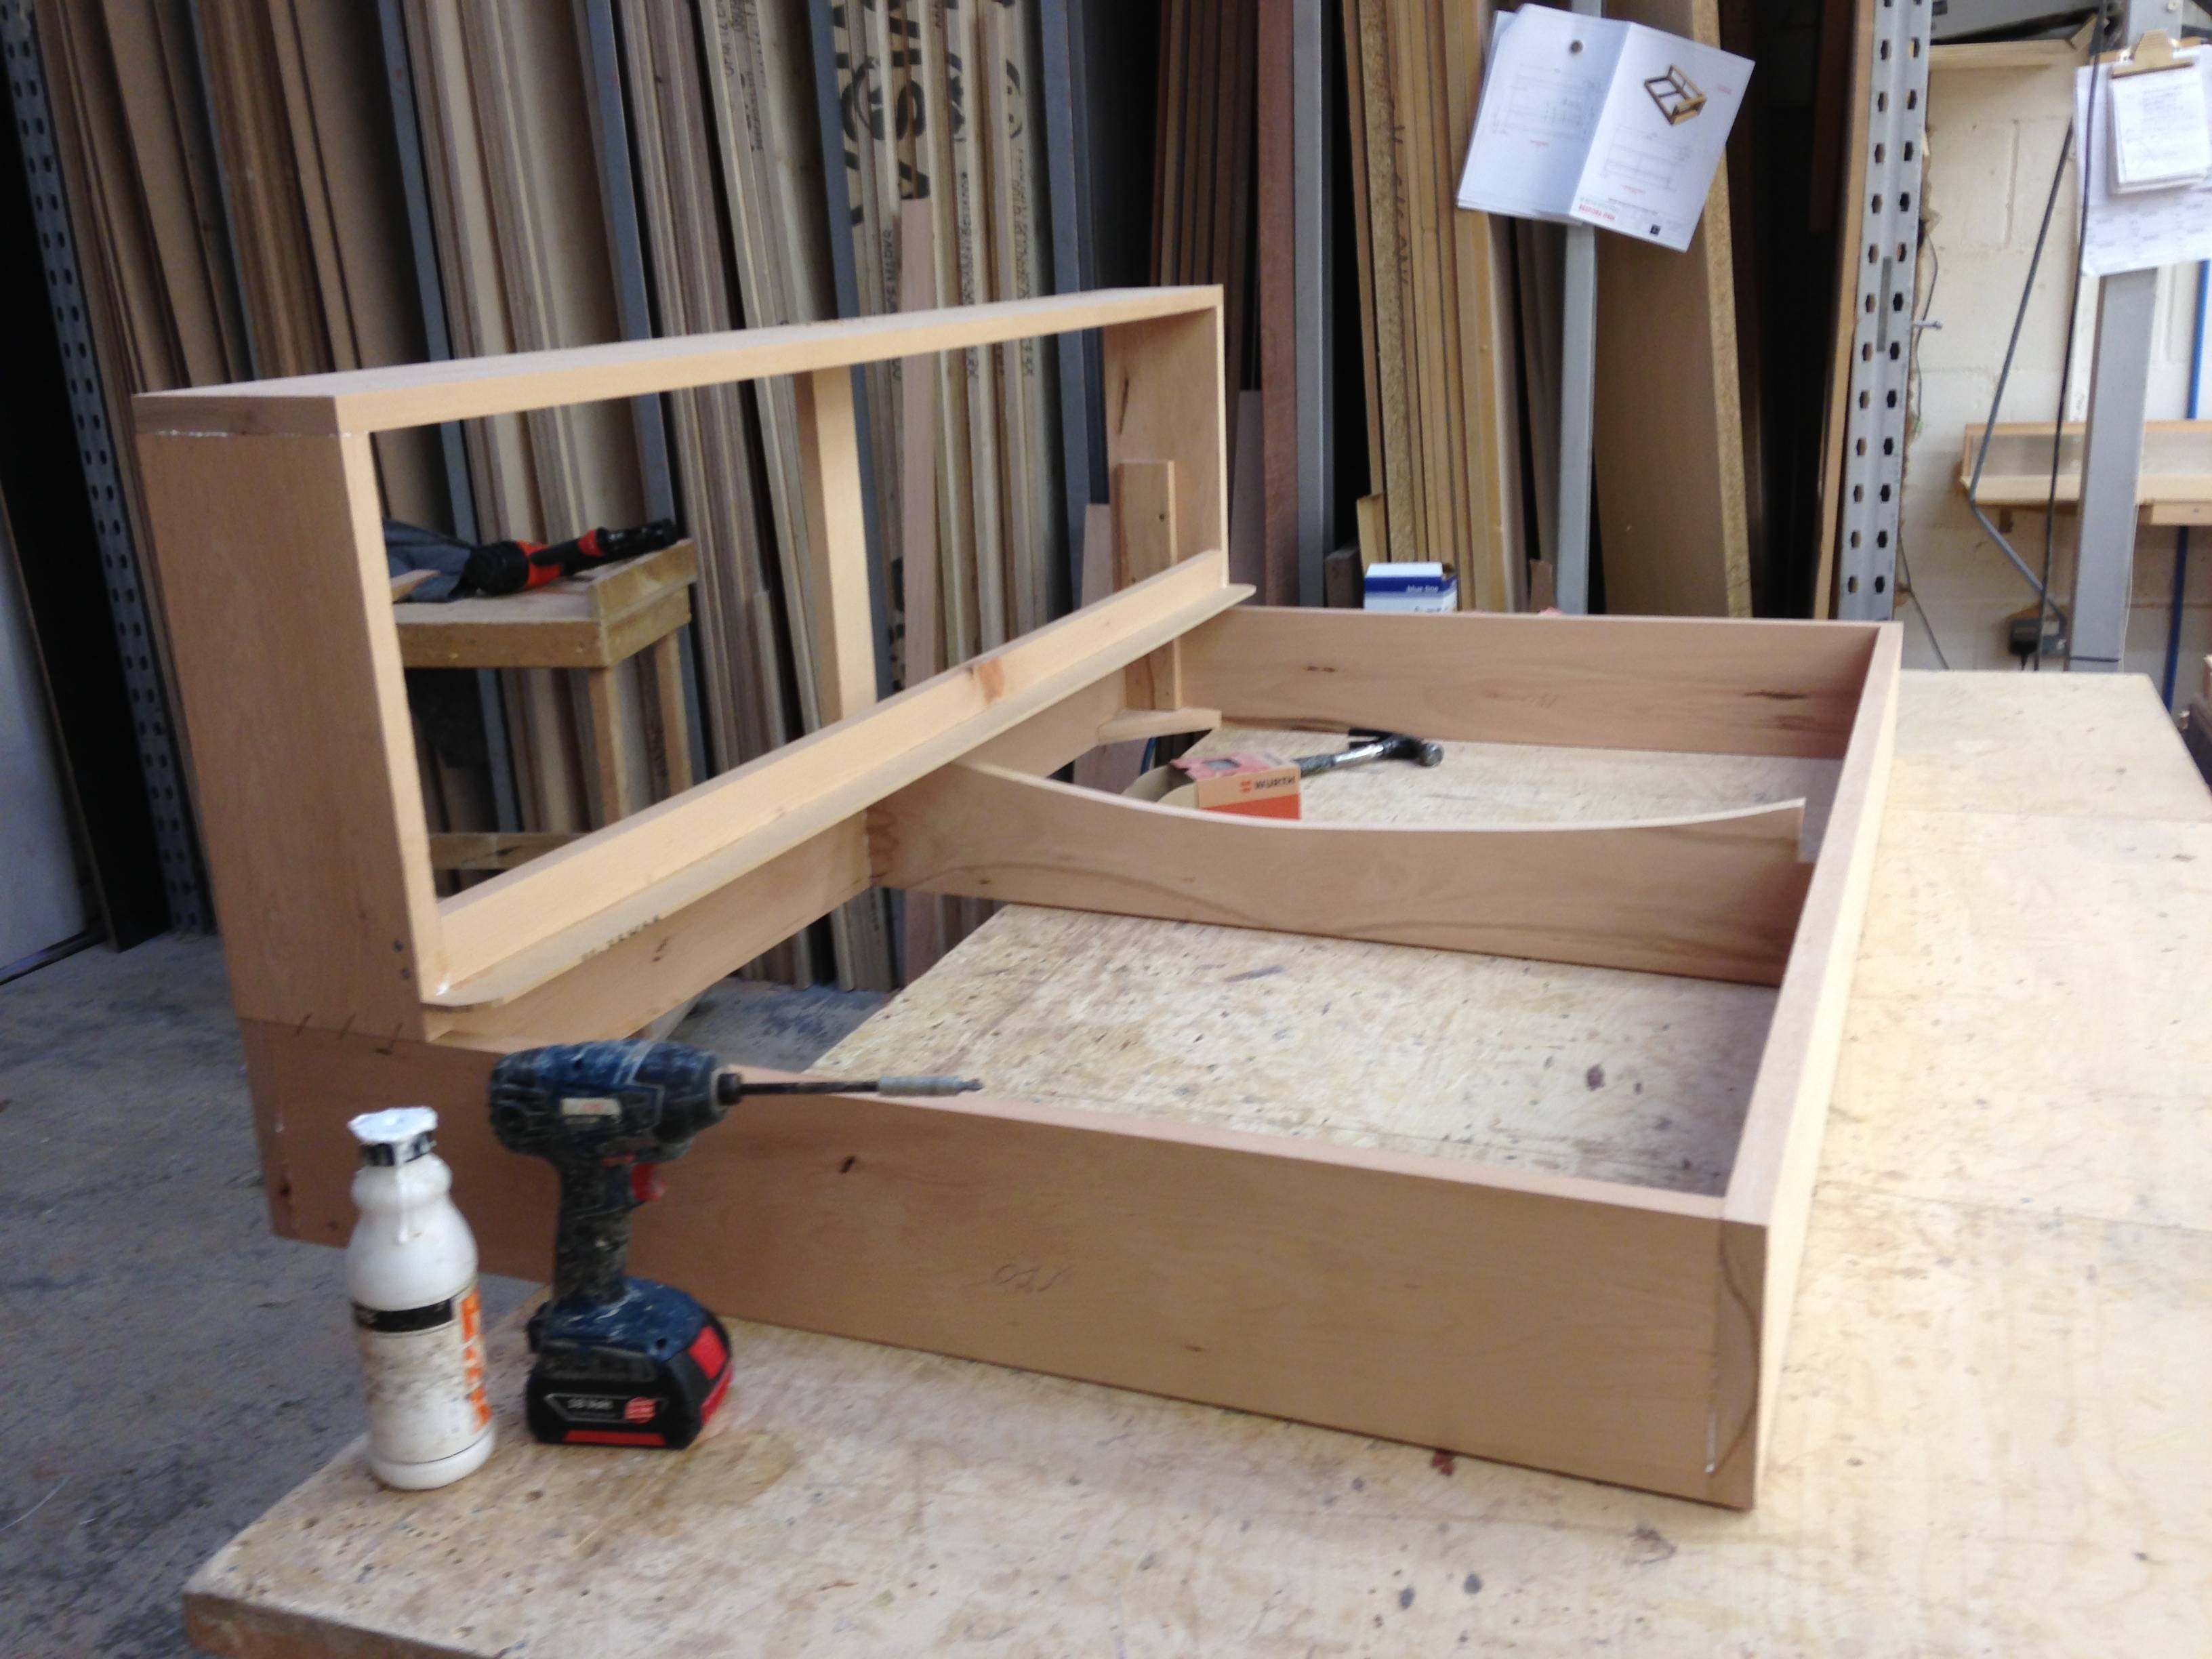 Build A Sofa intended for Diy Sofa Frame (Image 10 of 30)